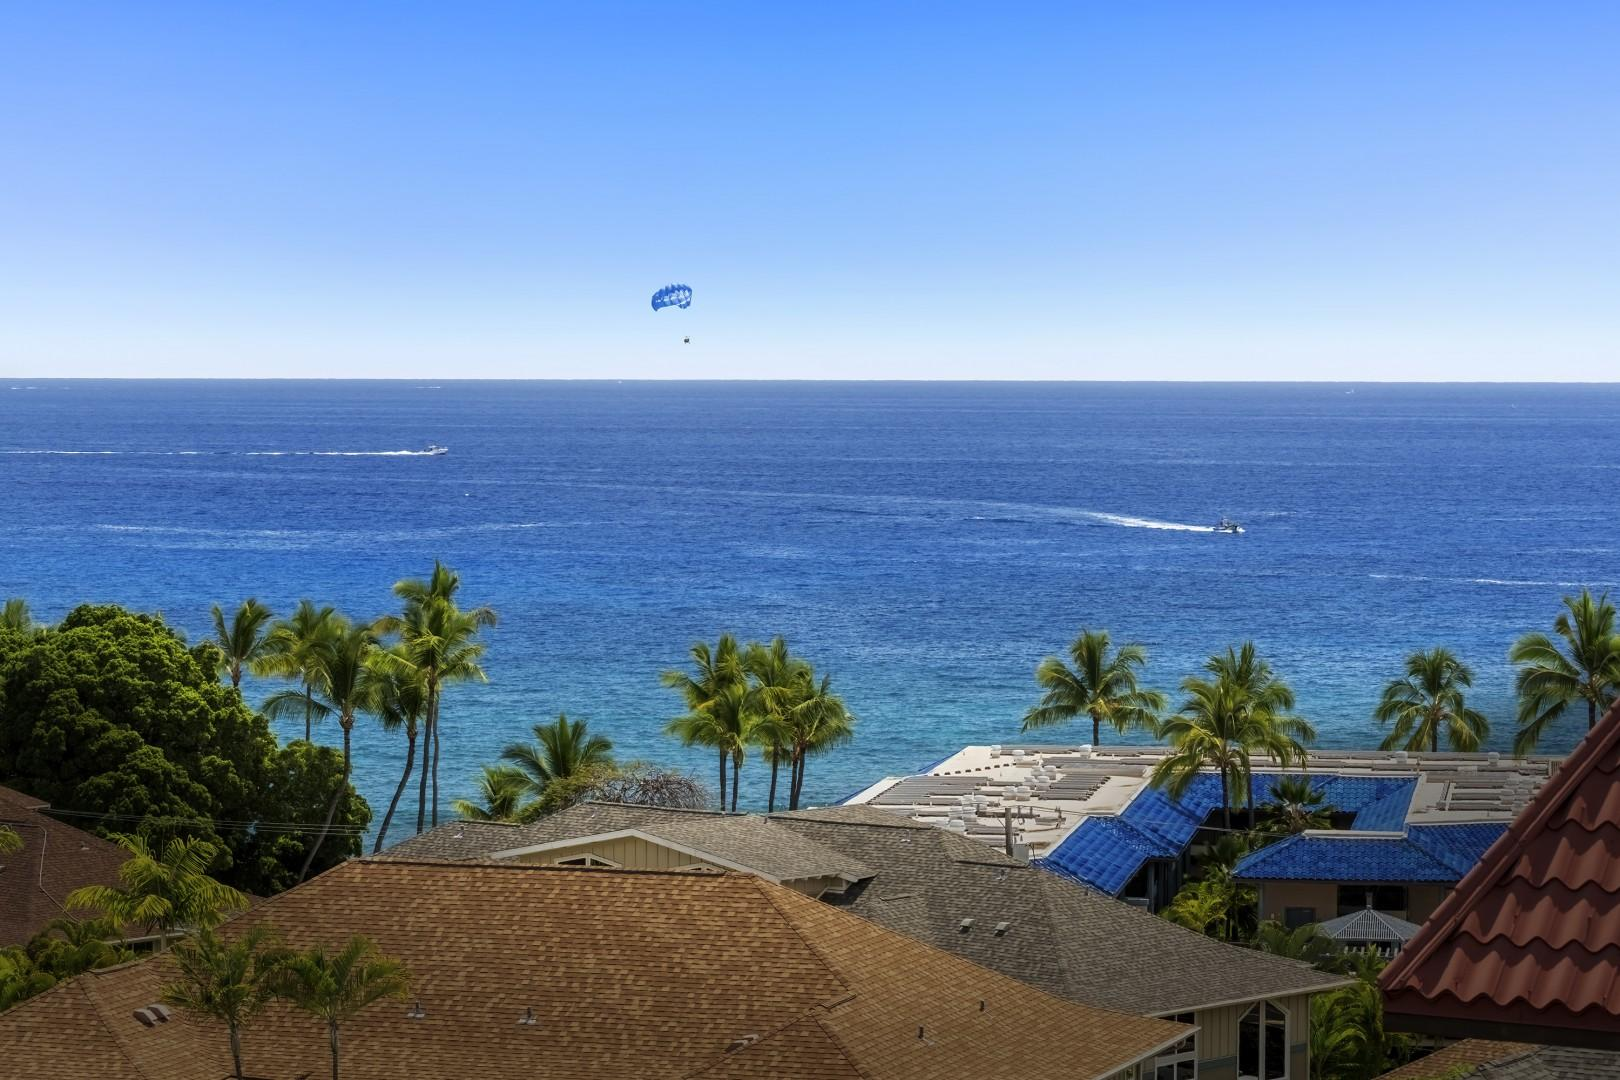 Zoomed view from the Lanai, watching the parasailers